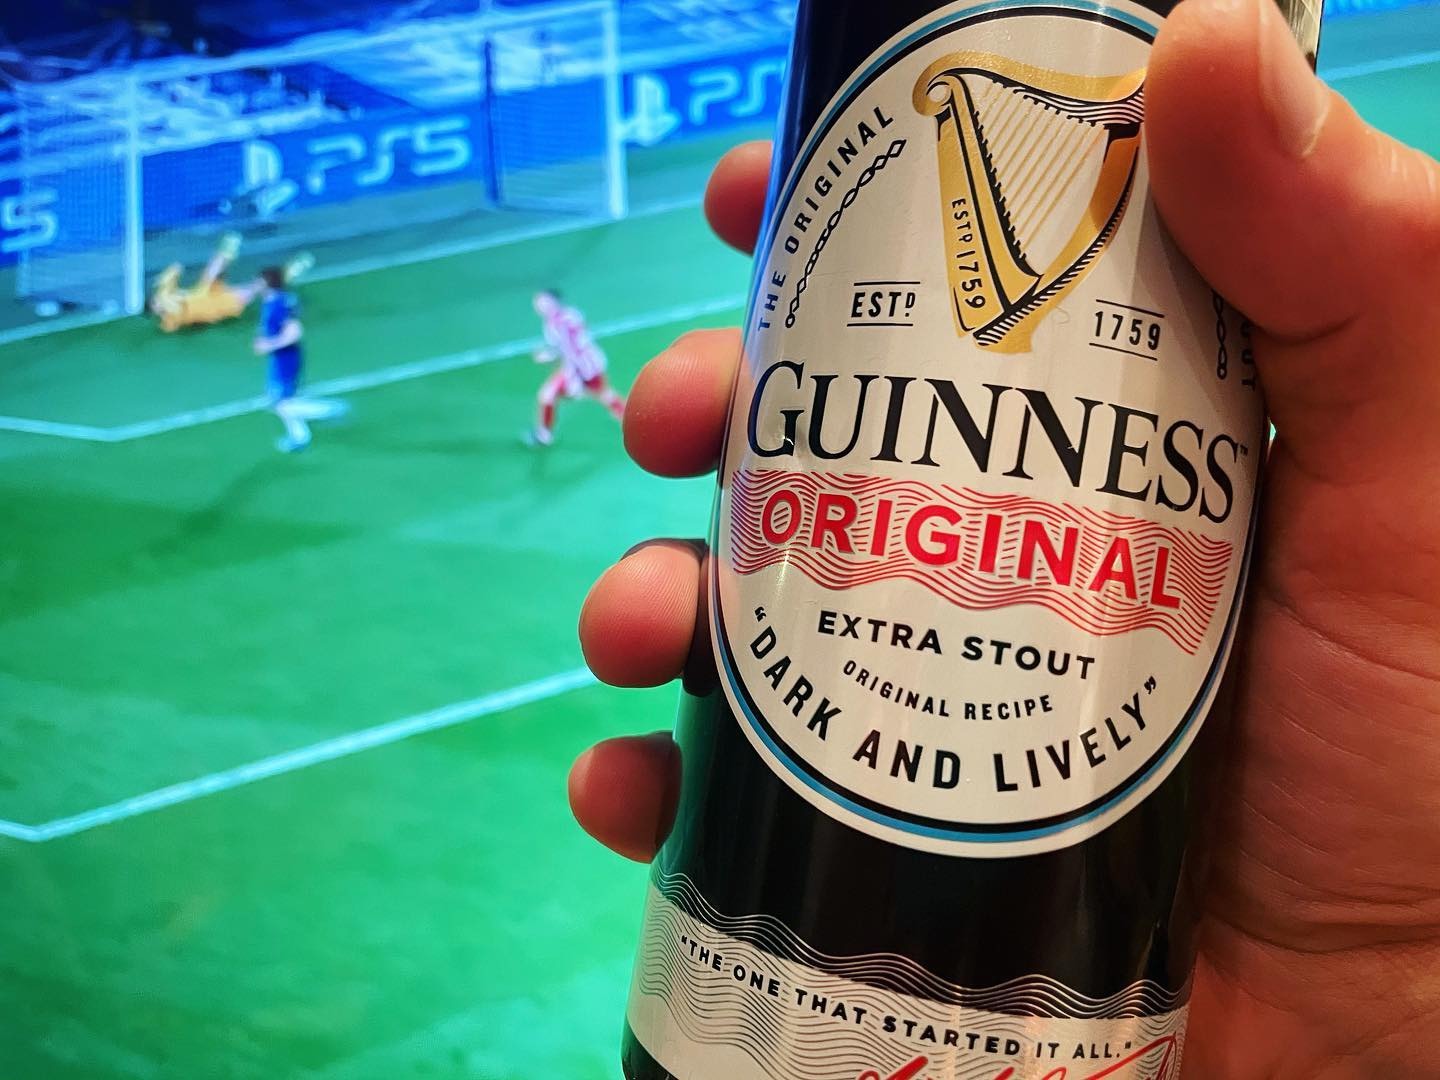 Happy St Patrick's Day one & all ☘️🎩  Whack the Champions League on, crack a Guinness (or two...) and may you be merry. Sláinte! 🍻 . Not long now guys, not long now 🙏🏼 🍺 🍔 ⚽️  . . . . . . . . . . . . #stpatricksday #stpatricks #stpaddys #stpaddysday #guinness #ireland #irish #beer #stpaddysathome #football #stayhome #staysafe #nearlythere #notlongnow #nearlyover #cheers #sliante